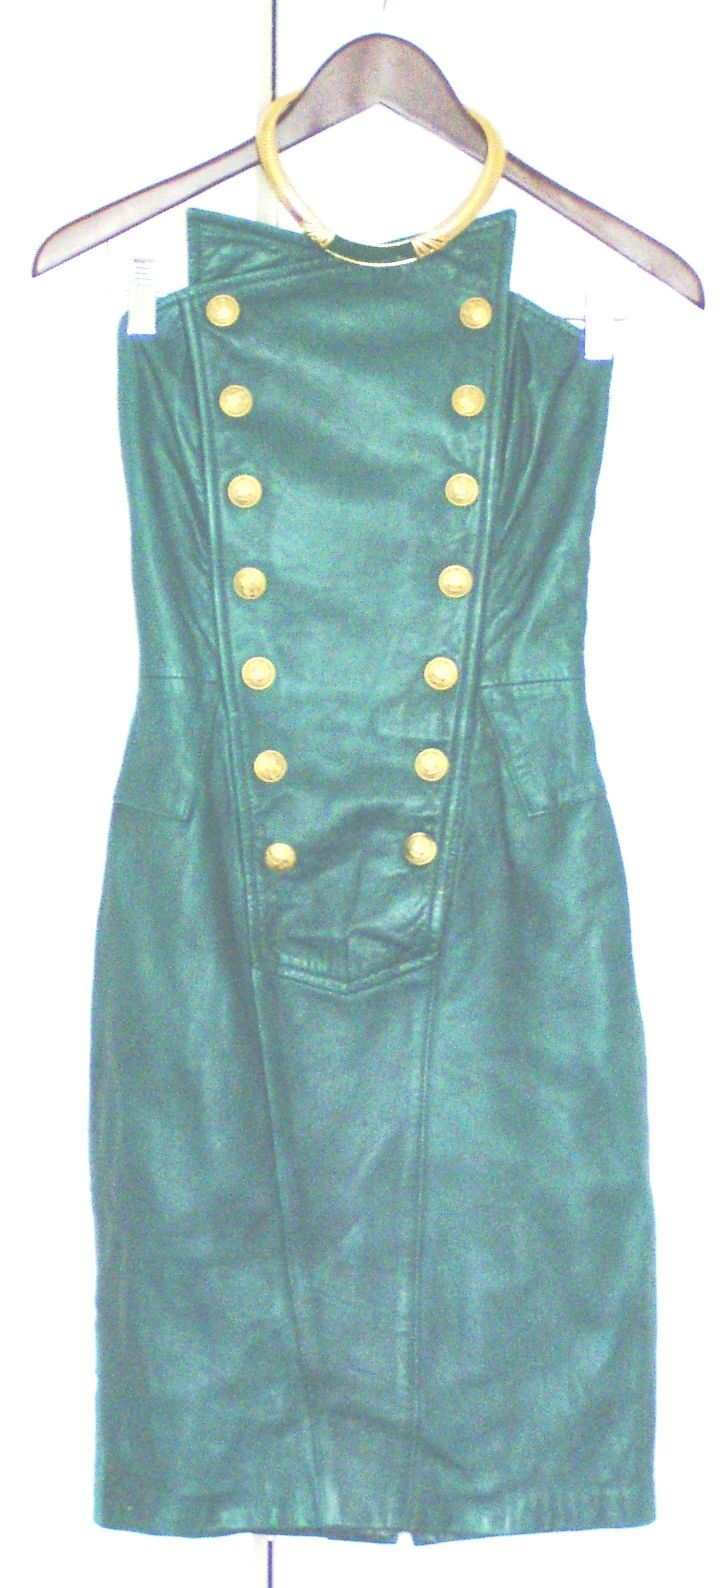 This was my emerald green north beach leather prom dress circa